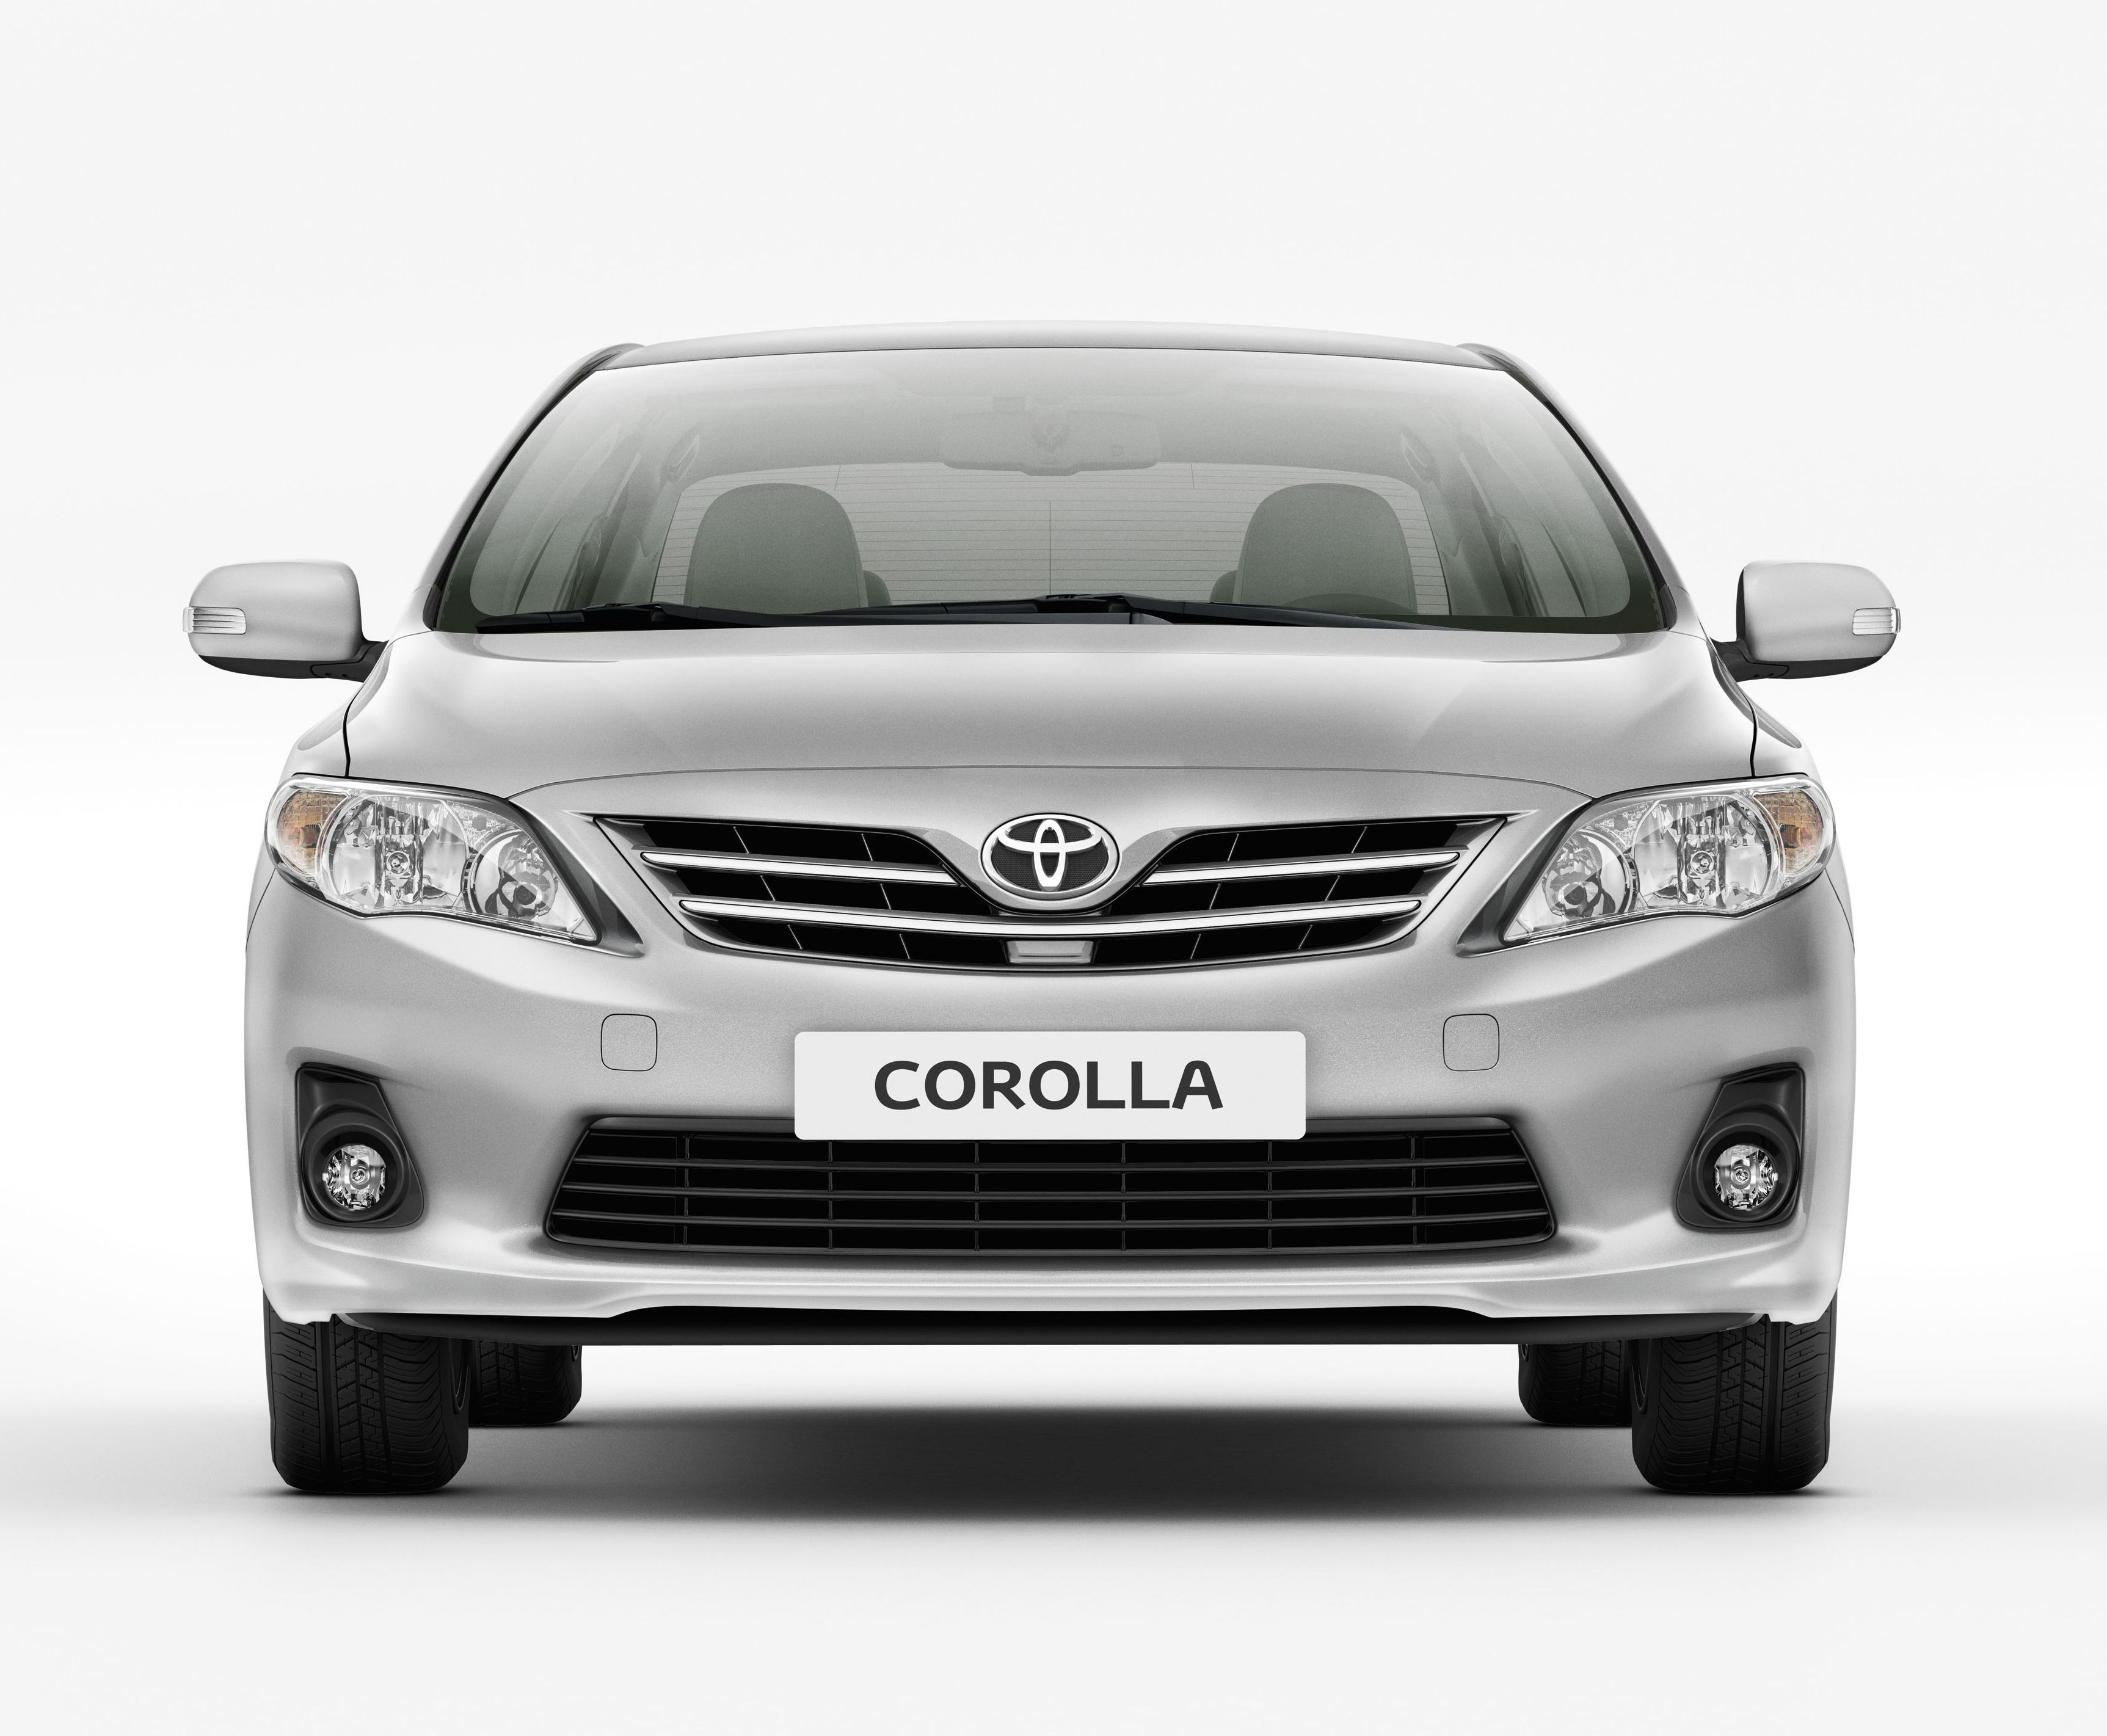 2014 toyota corolla full test and video on edmunds com cars trucks and cars auto